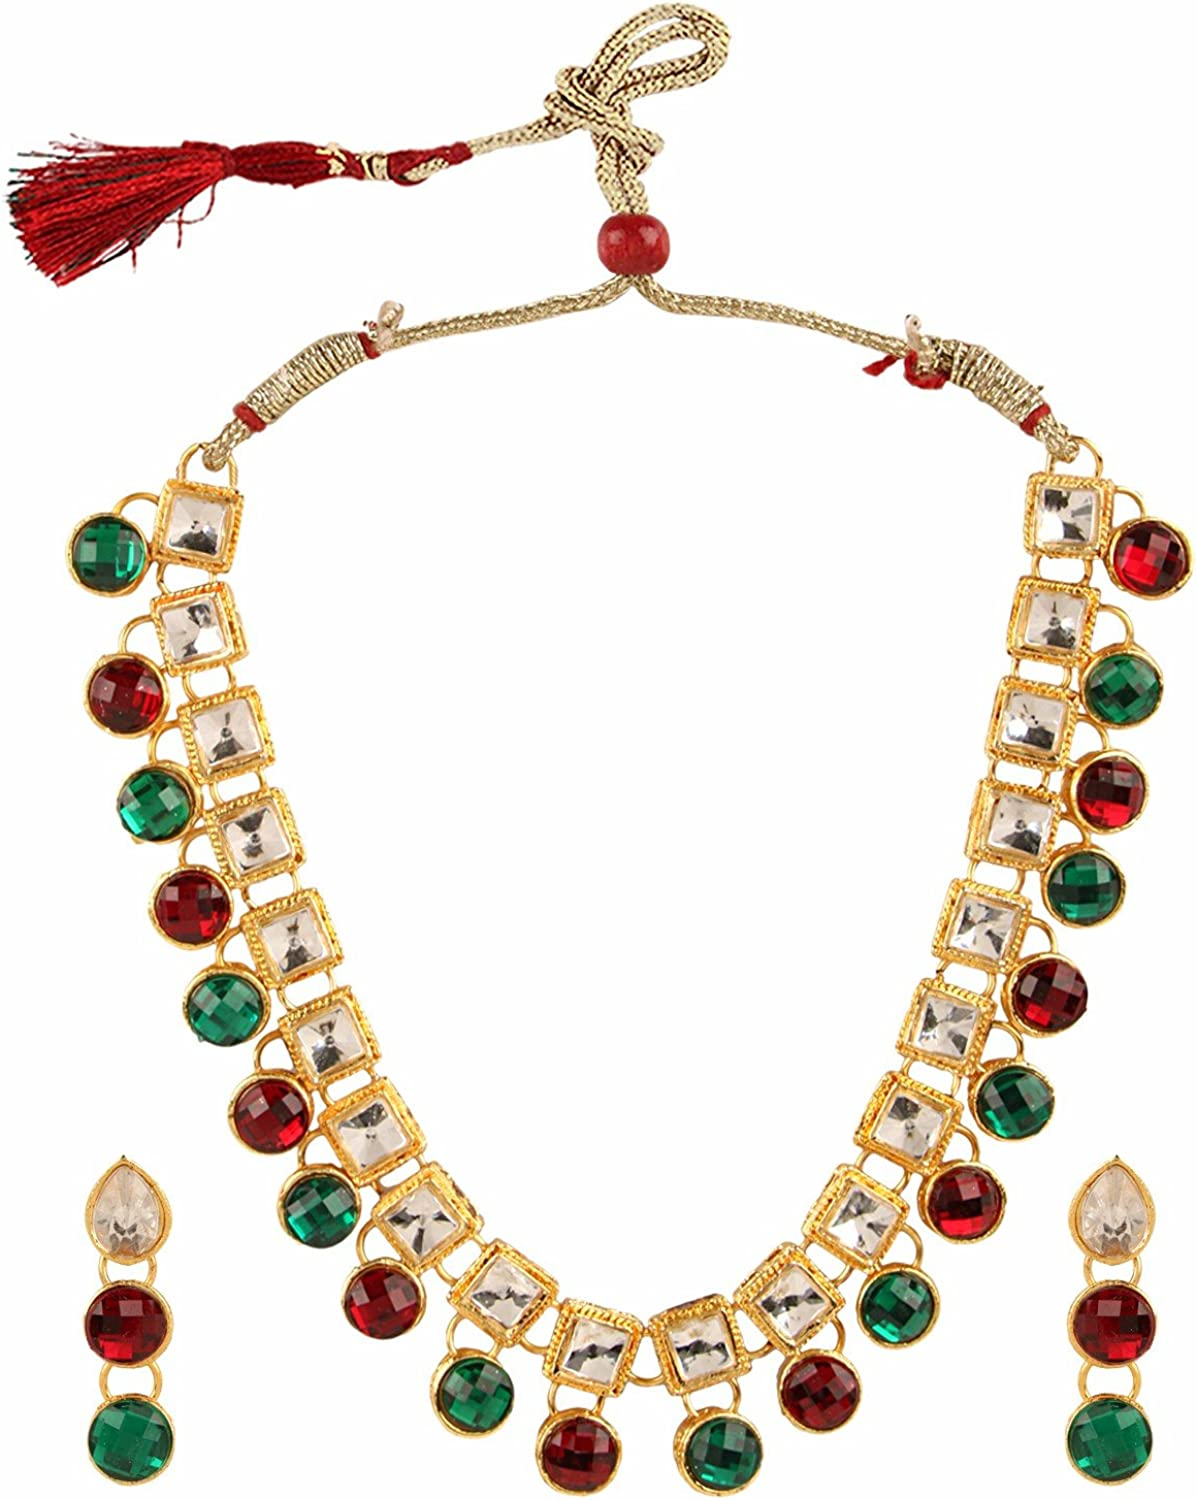 Efulgenz Indian Bollywood Traditional White Red Green Rhinestone Faux Ruby Emerald Heavy Bridal Designer Jewelry Choker Necklace Set in Antique 18k Gold Tone for Women and Girls